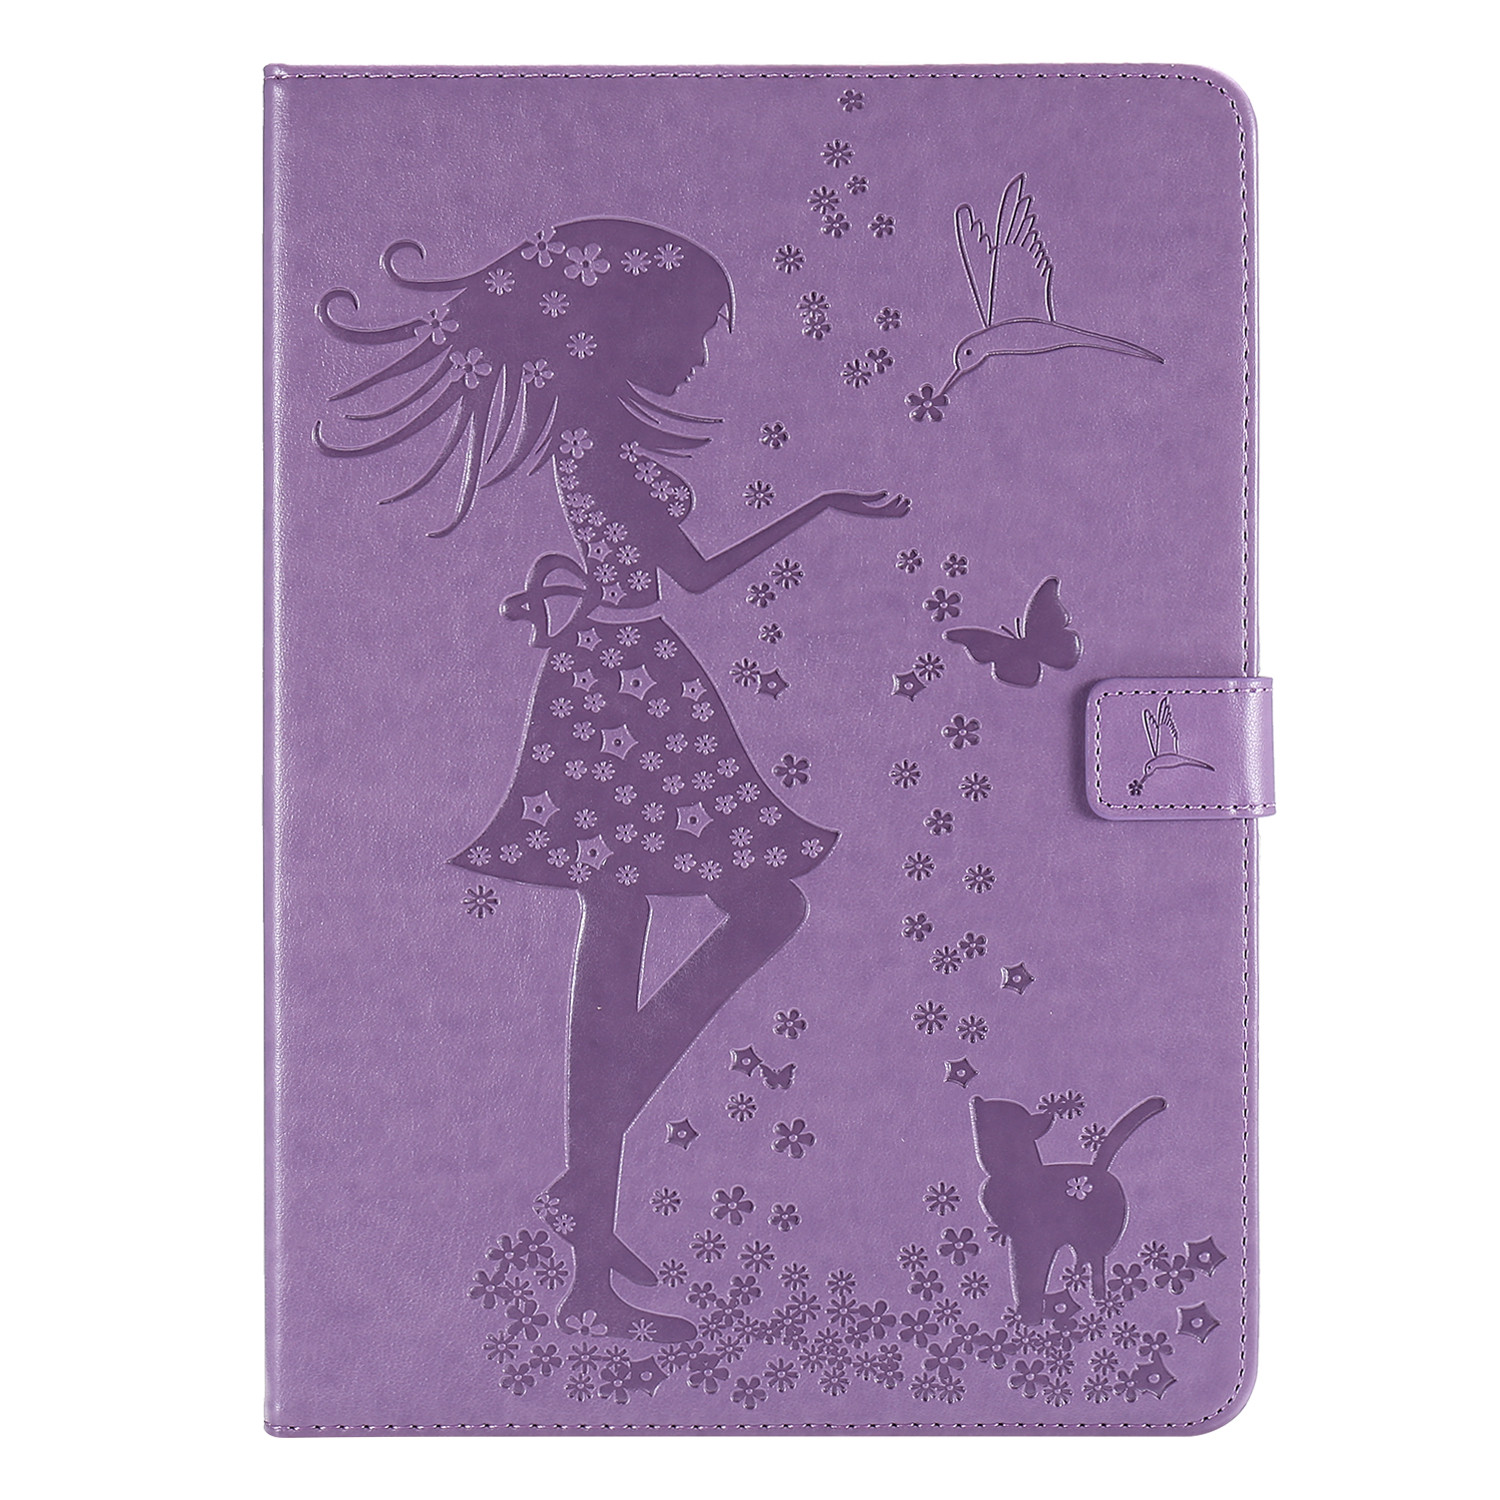 3 Green For iPad 4th Gen 12 9 Cover 2020 Funda Cover Stand Leather Shell Folio Protective Case